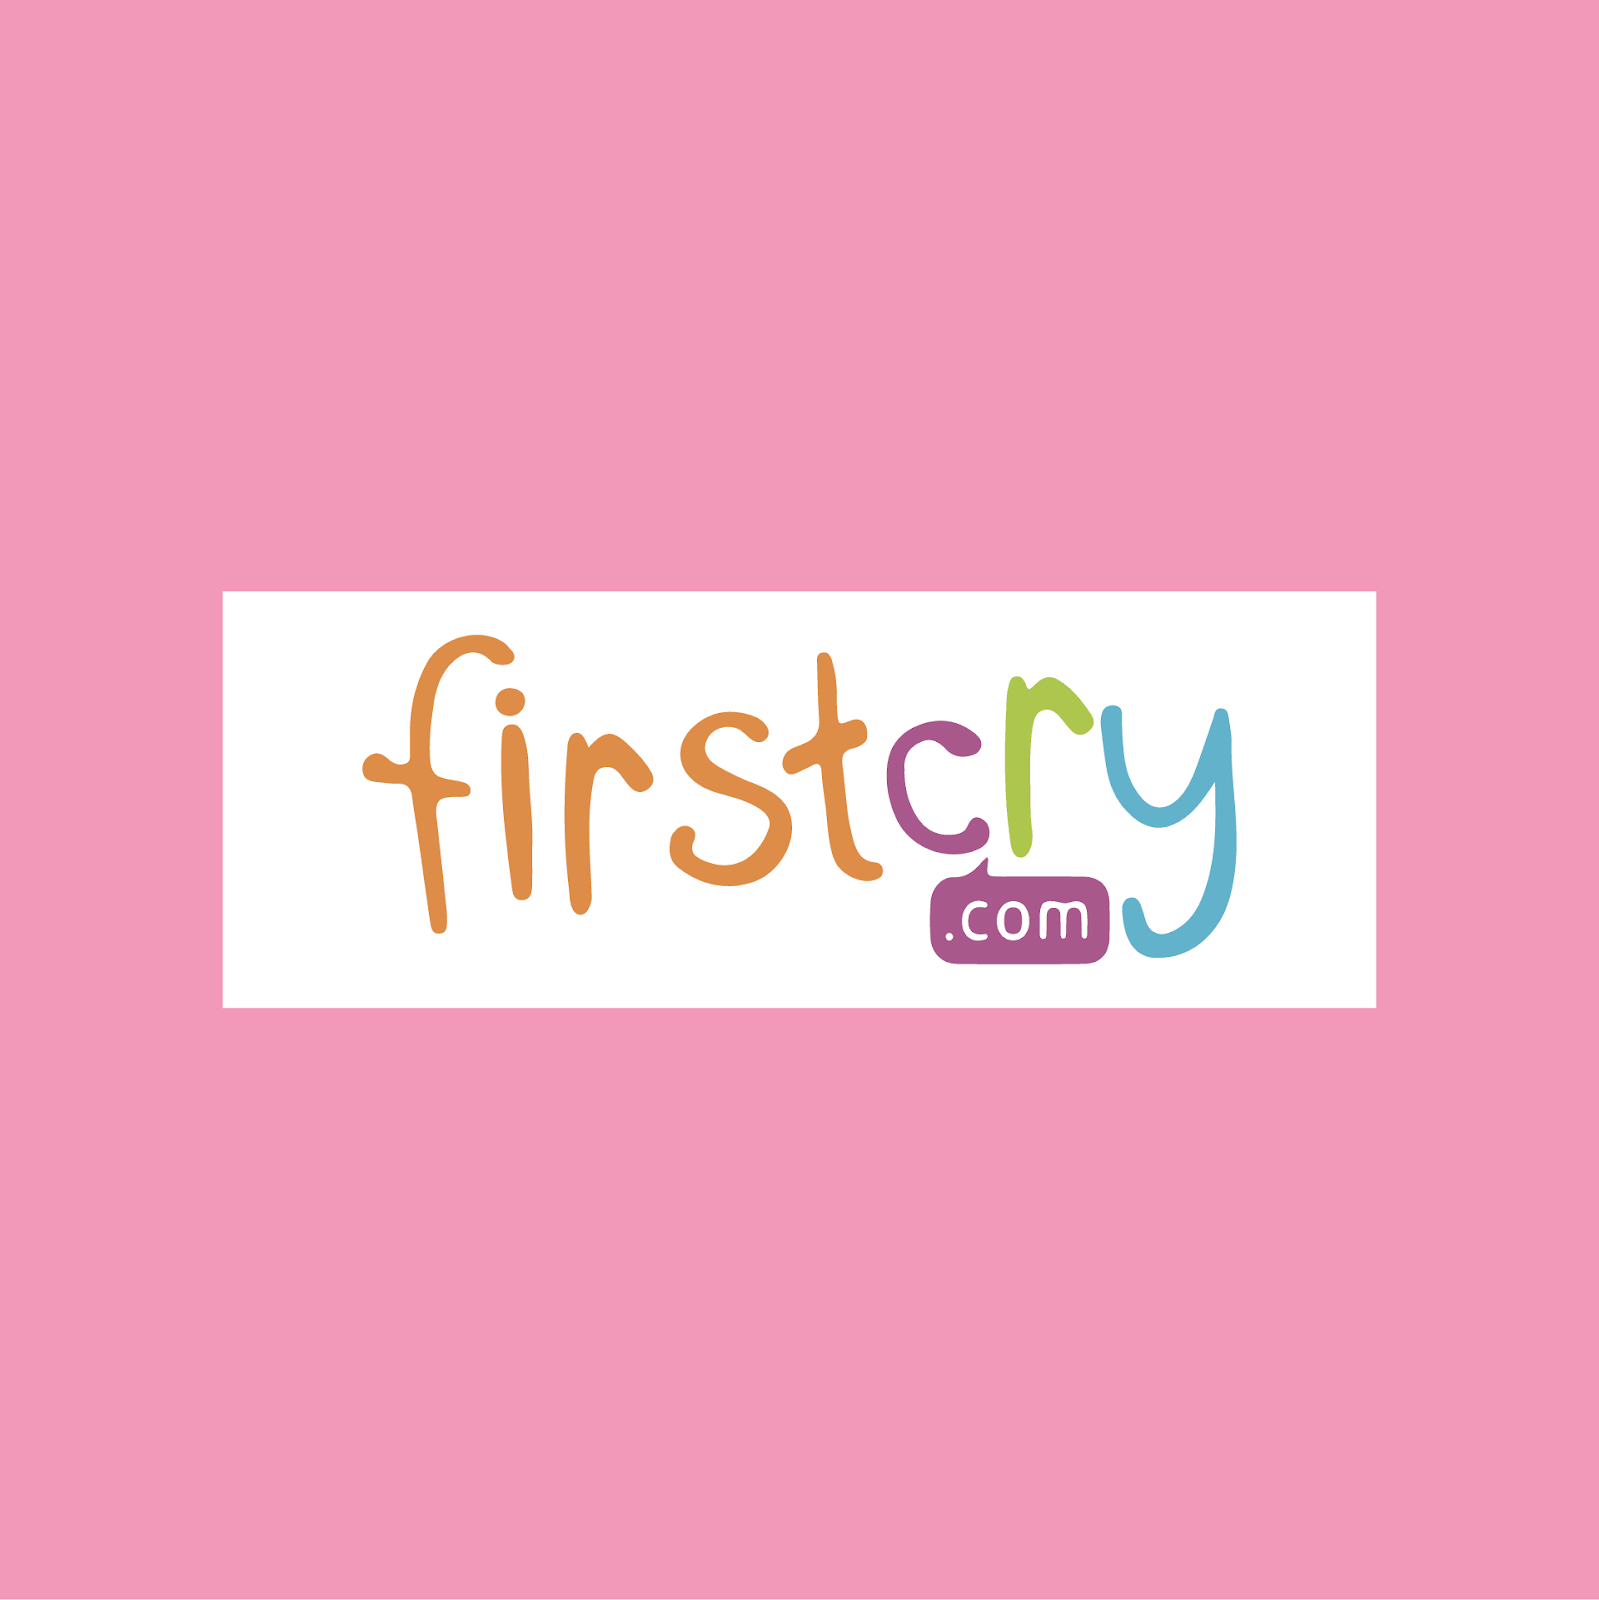 First cry gift voucher in Xoxoday Plum